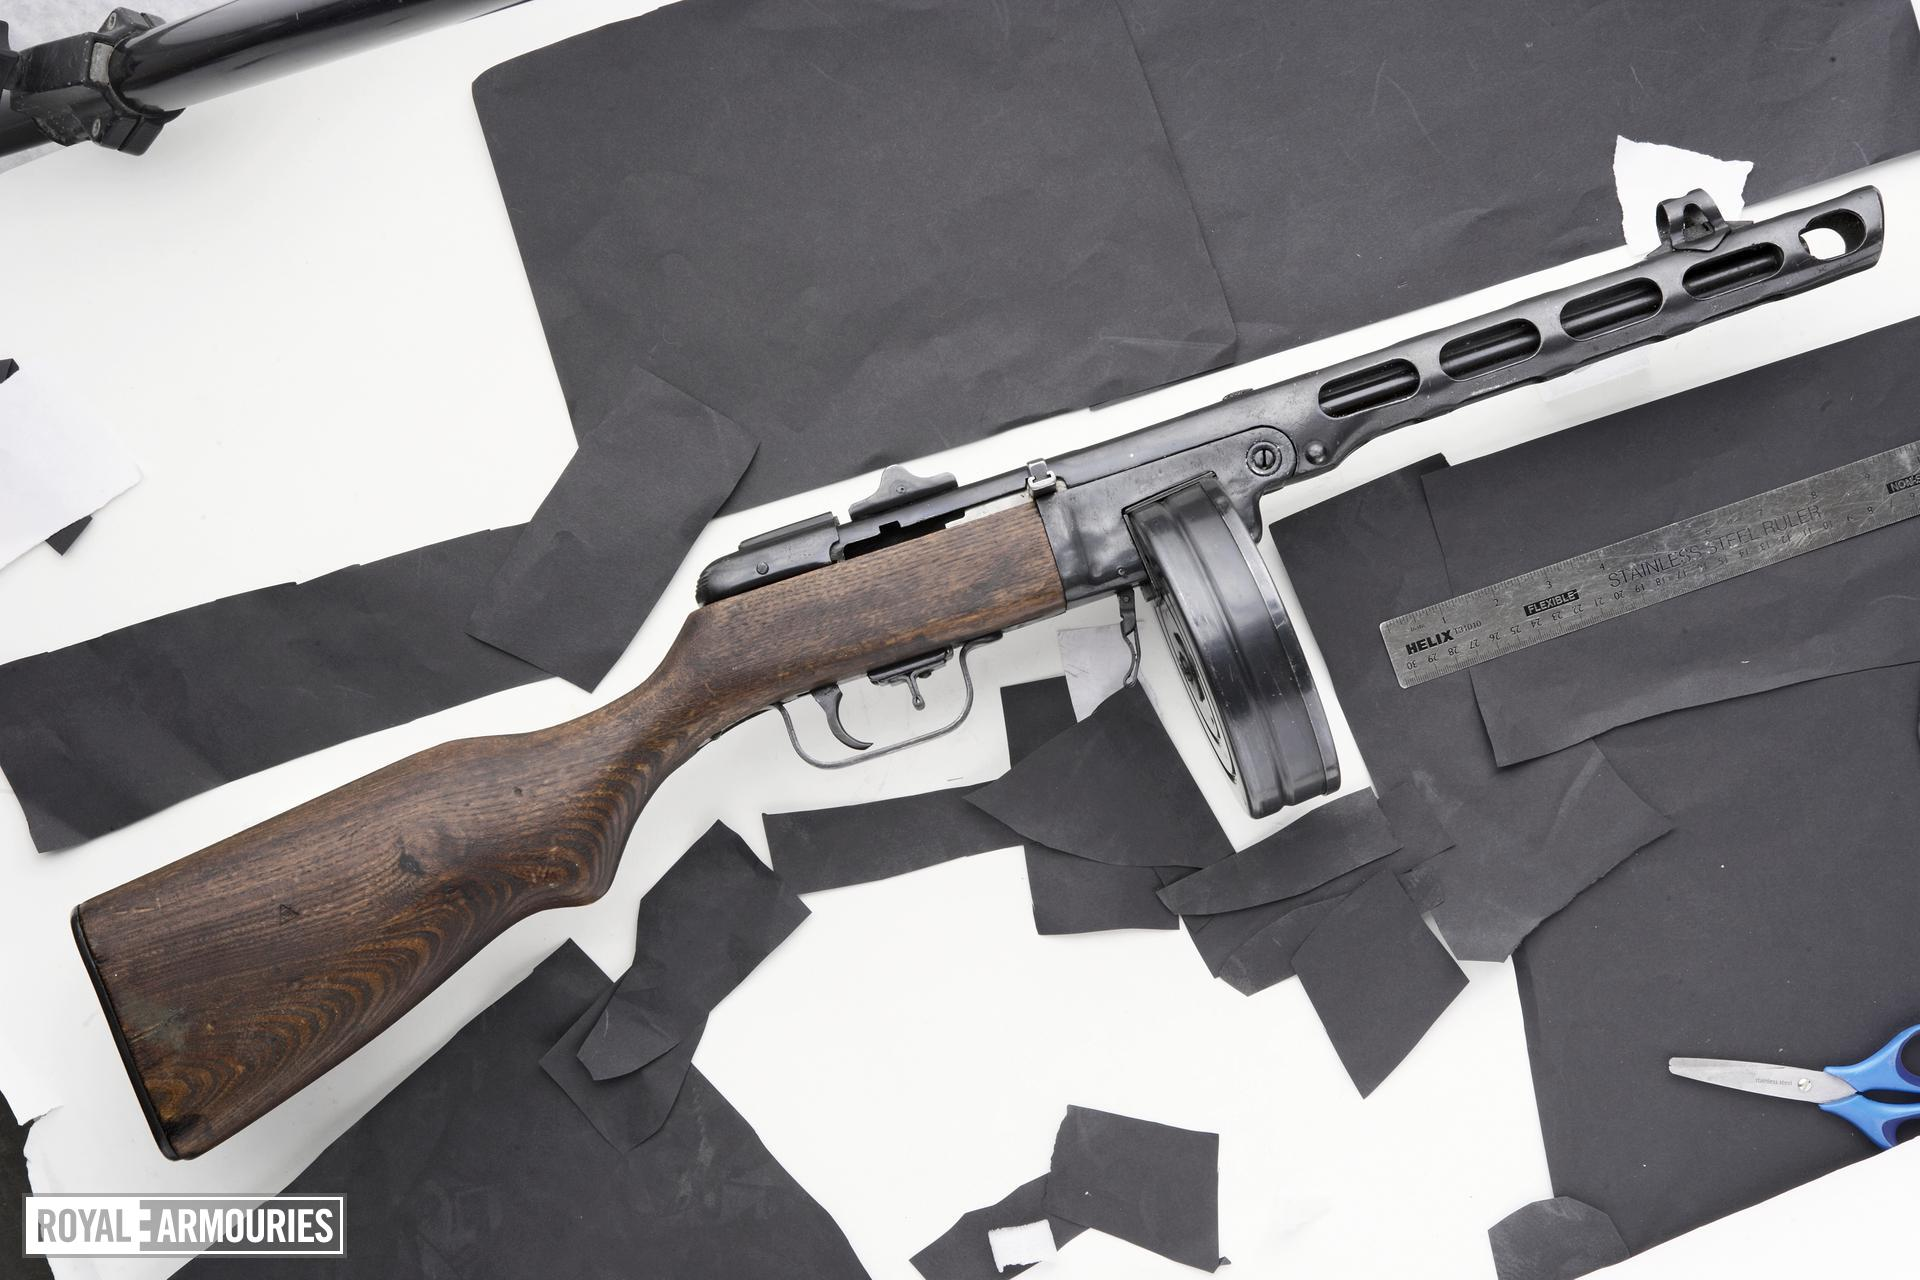 Centrefire automatic submachine gun - Shpagin PPSH41